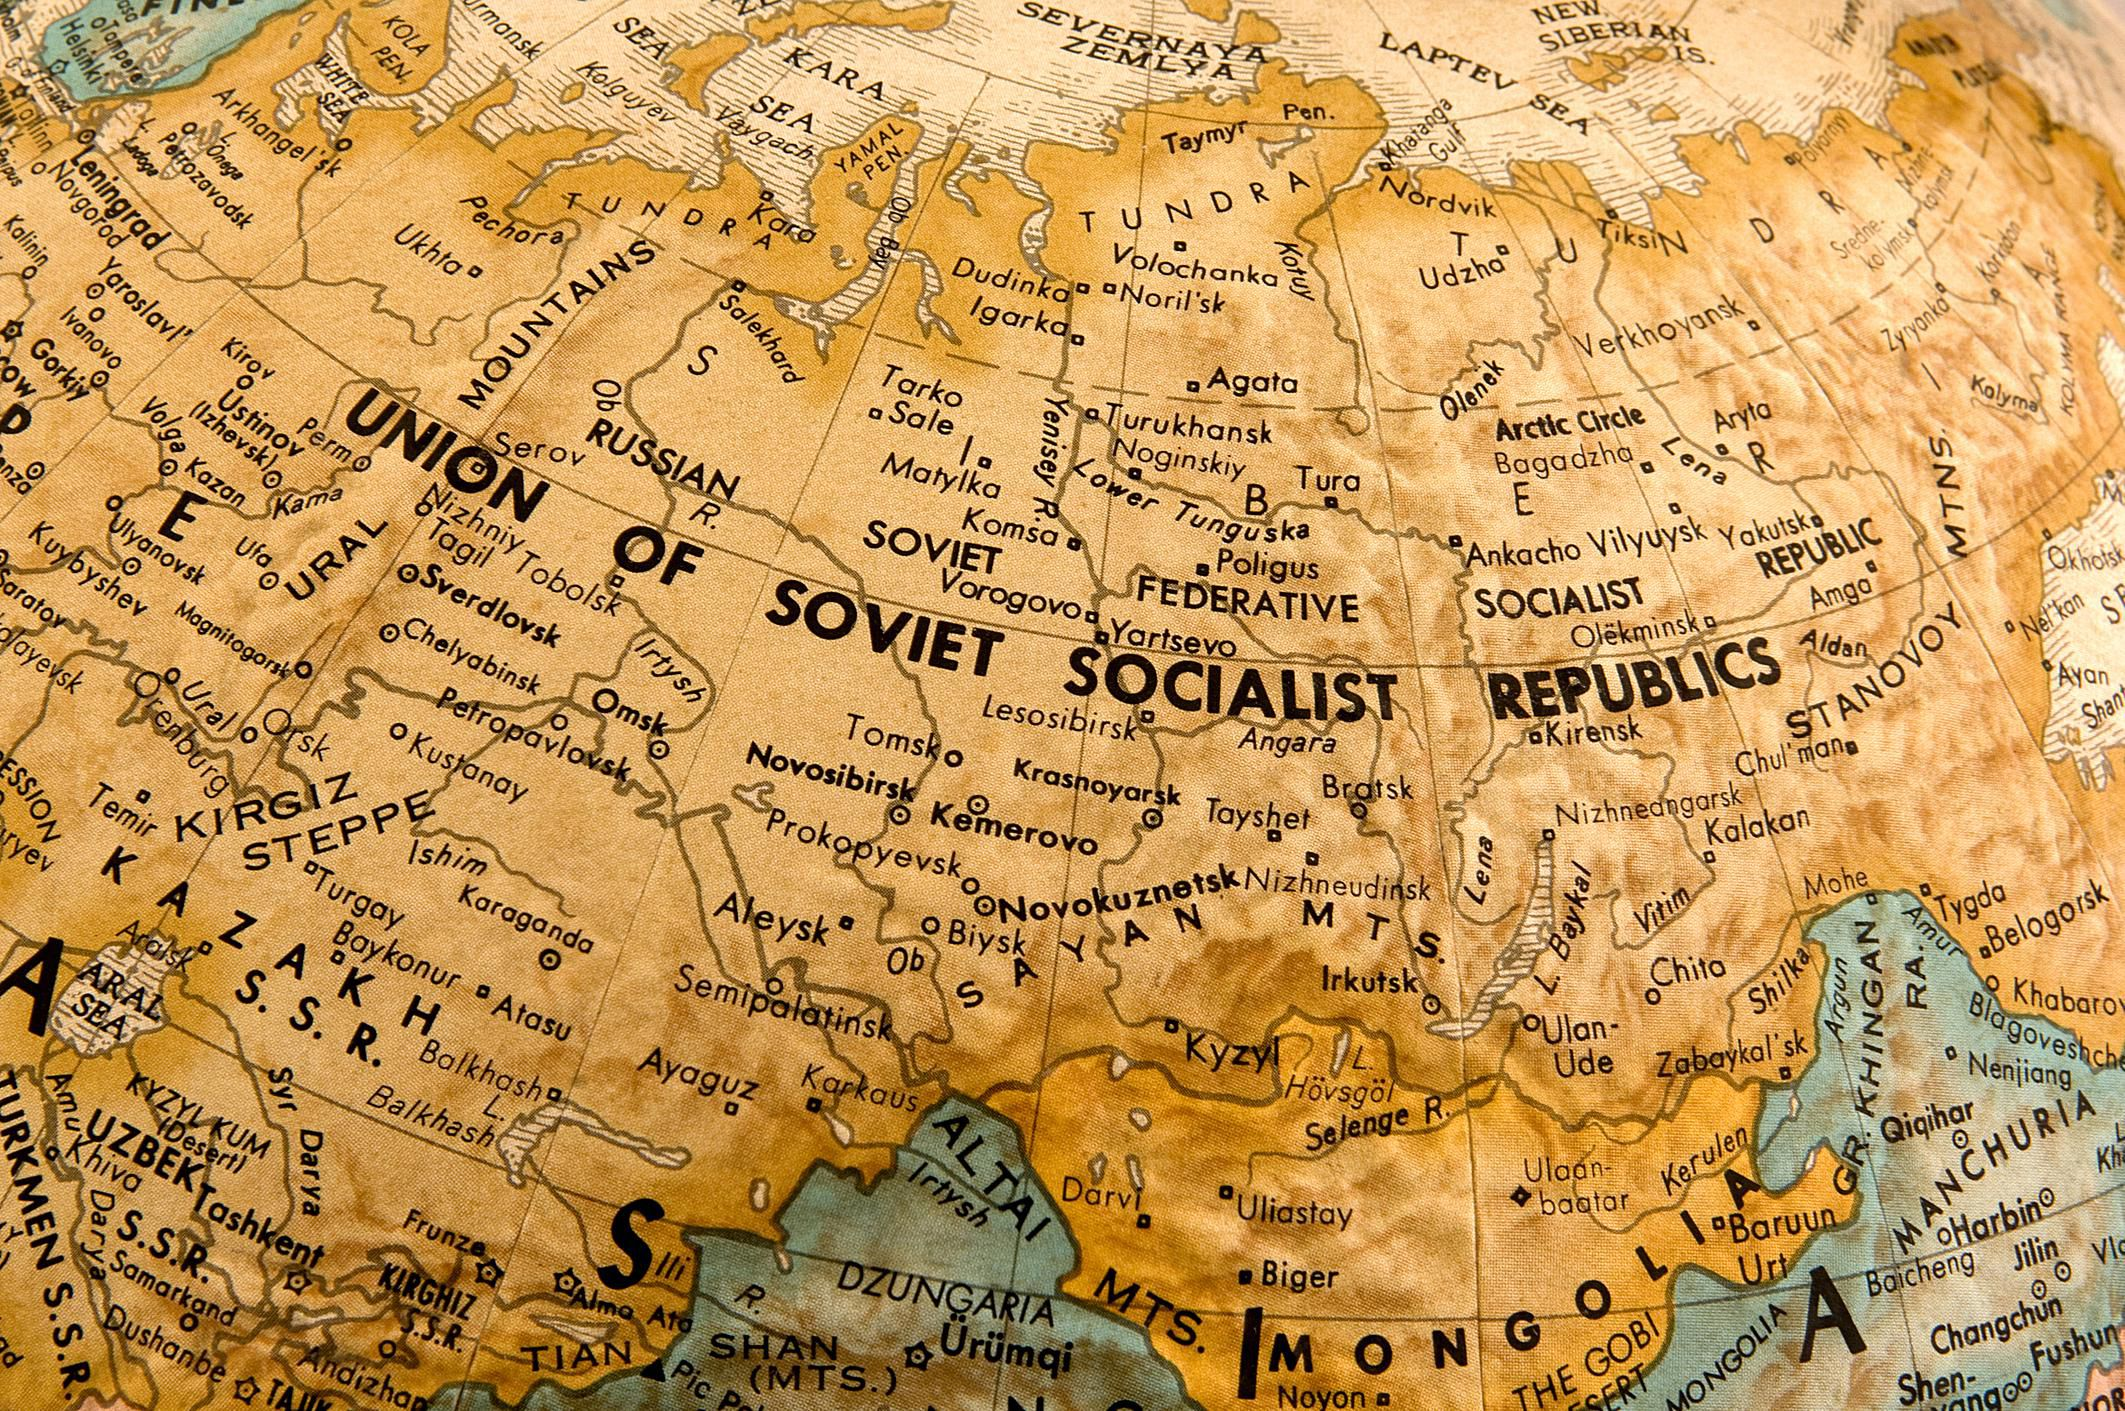 Overview of Union of Soviet Socialist Republics